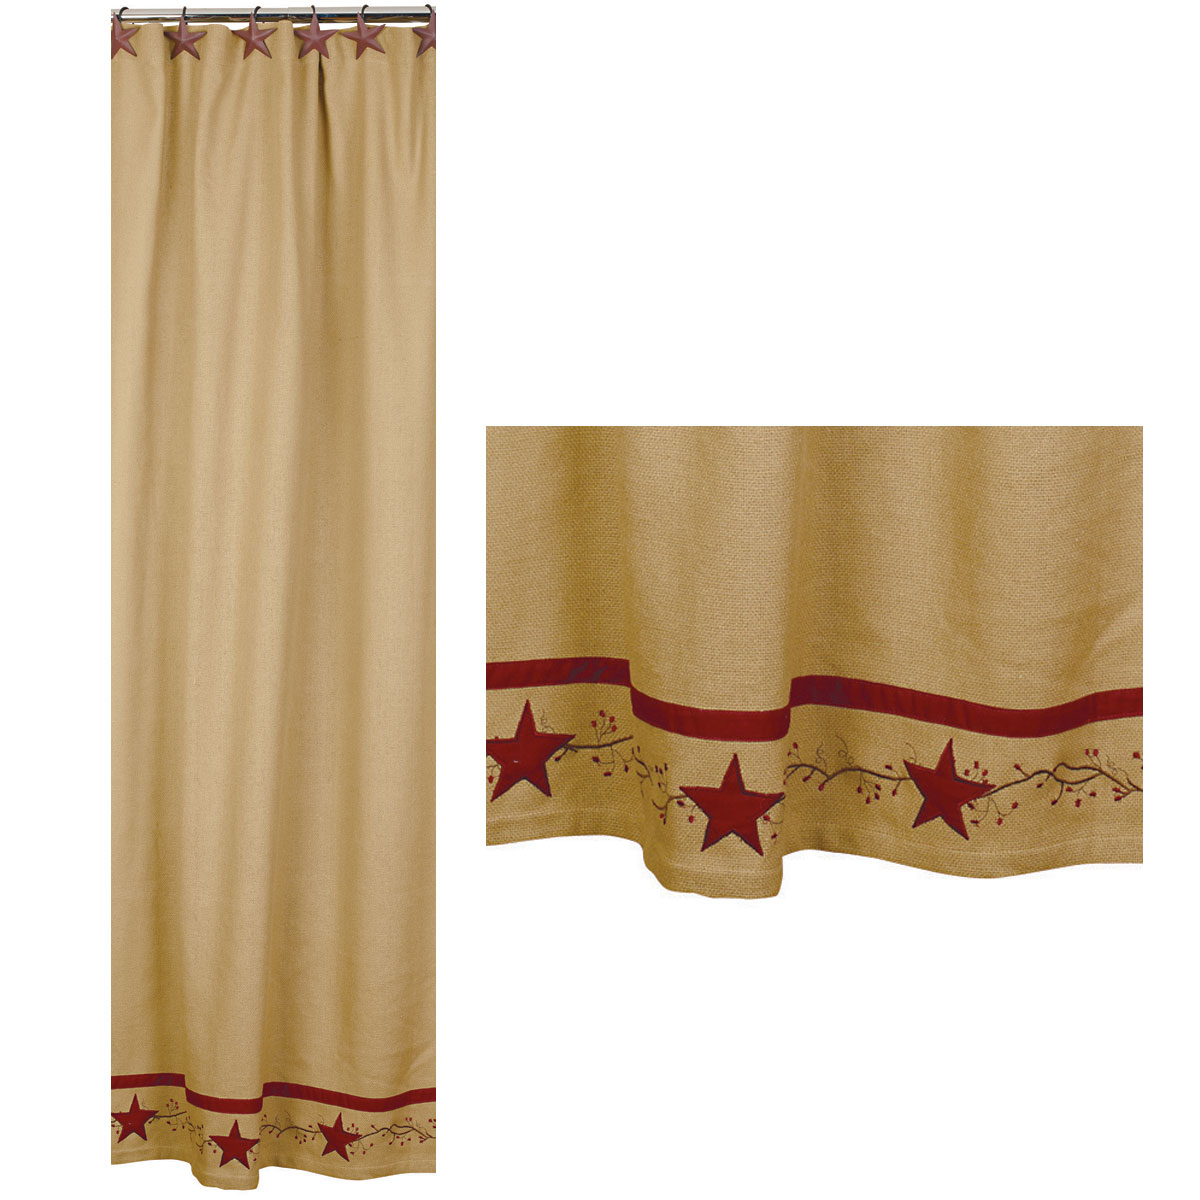 Primitive Star Vine Cotton Burlap Country Shower Curtain